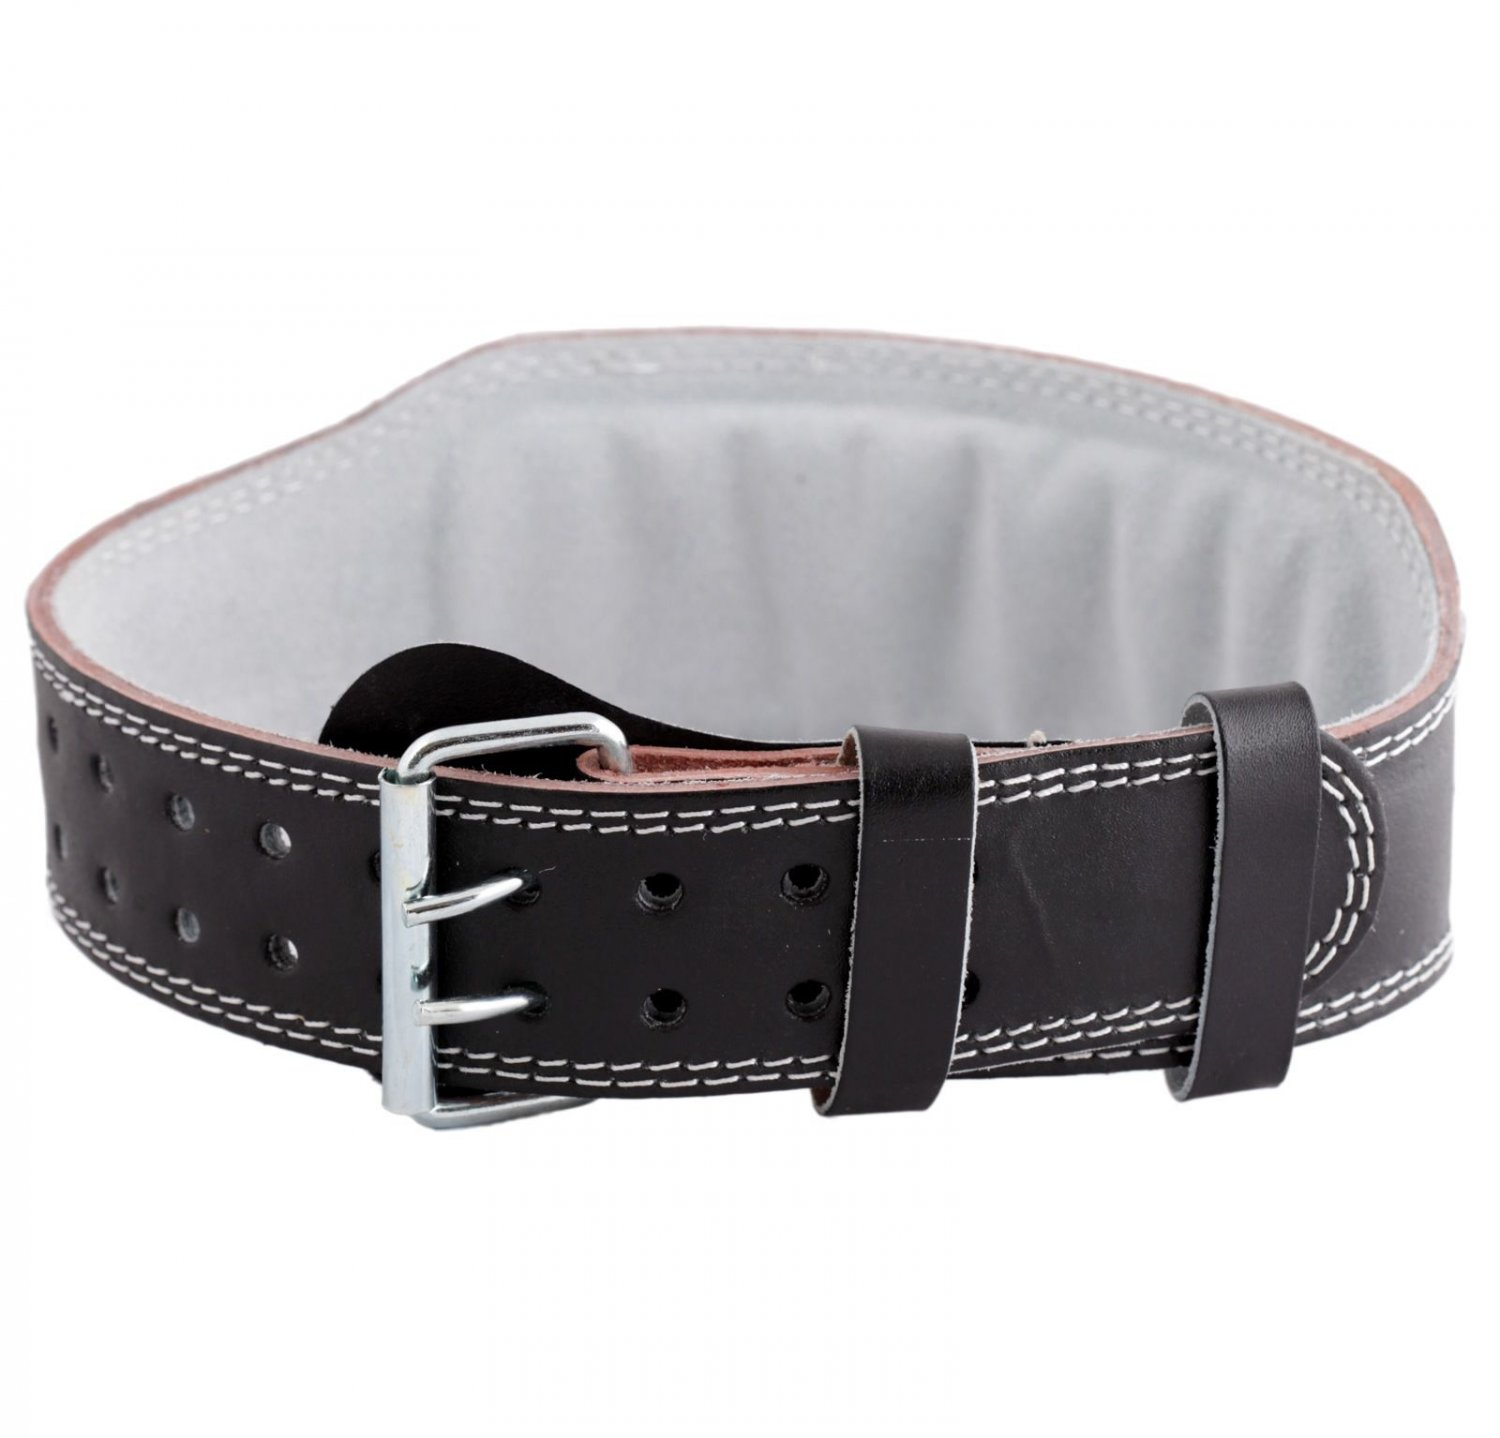 SIR-G Weight Power Lifting Leather Belt Gym Training Powerlifting Straps